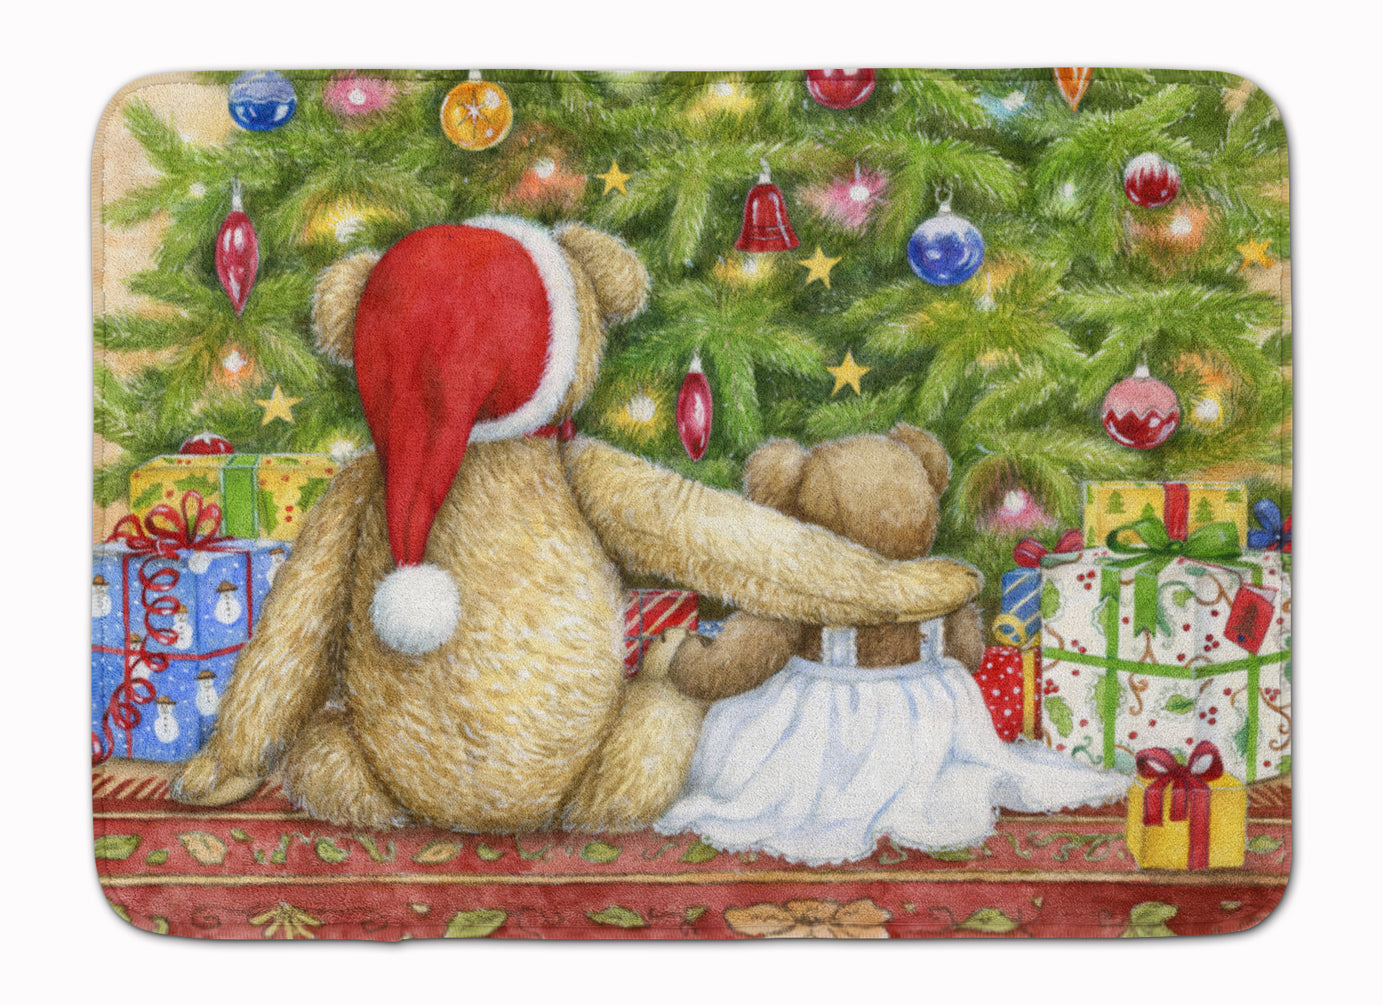 Christmas Teddy Bears with Tree Machine Washable Memory Foam Mat CDCO0415RUG by Caroline's Treasures